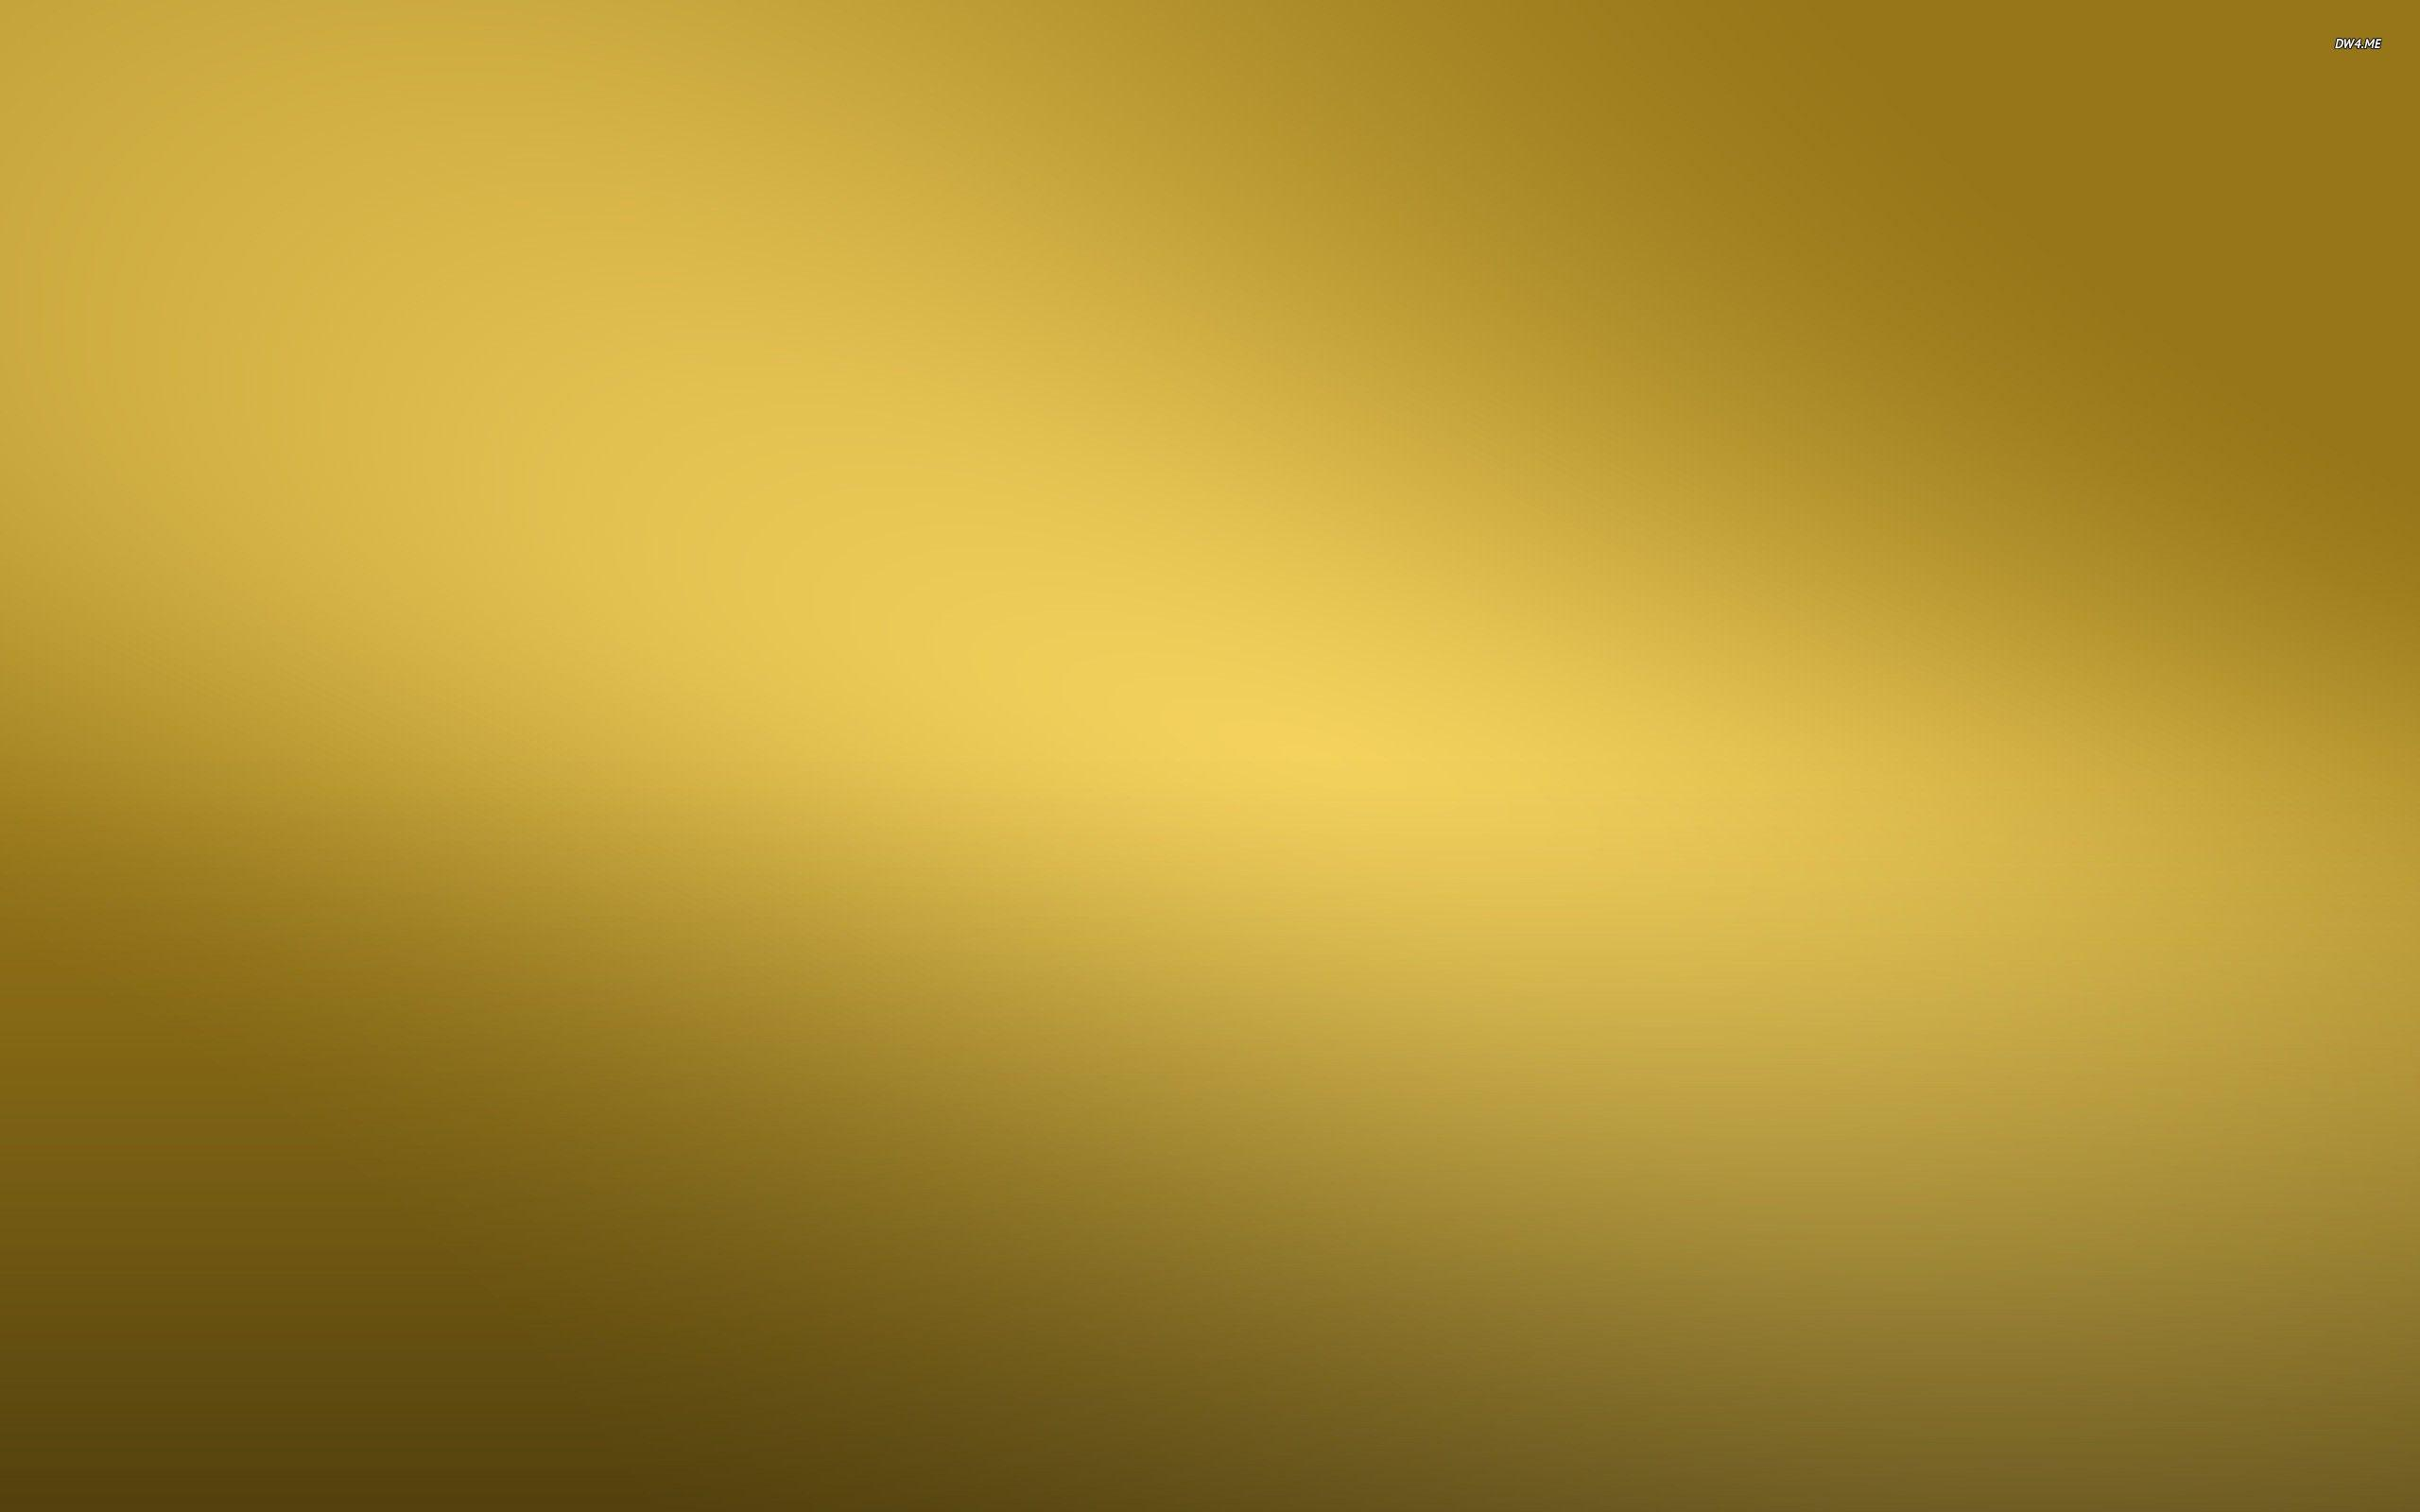 Gold Backgrounds Hd Wallpaper Cave